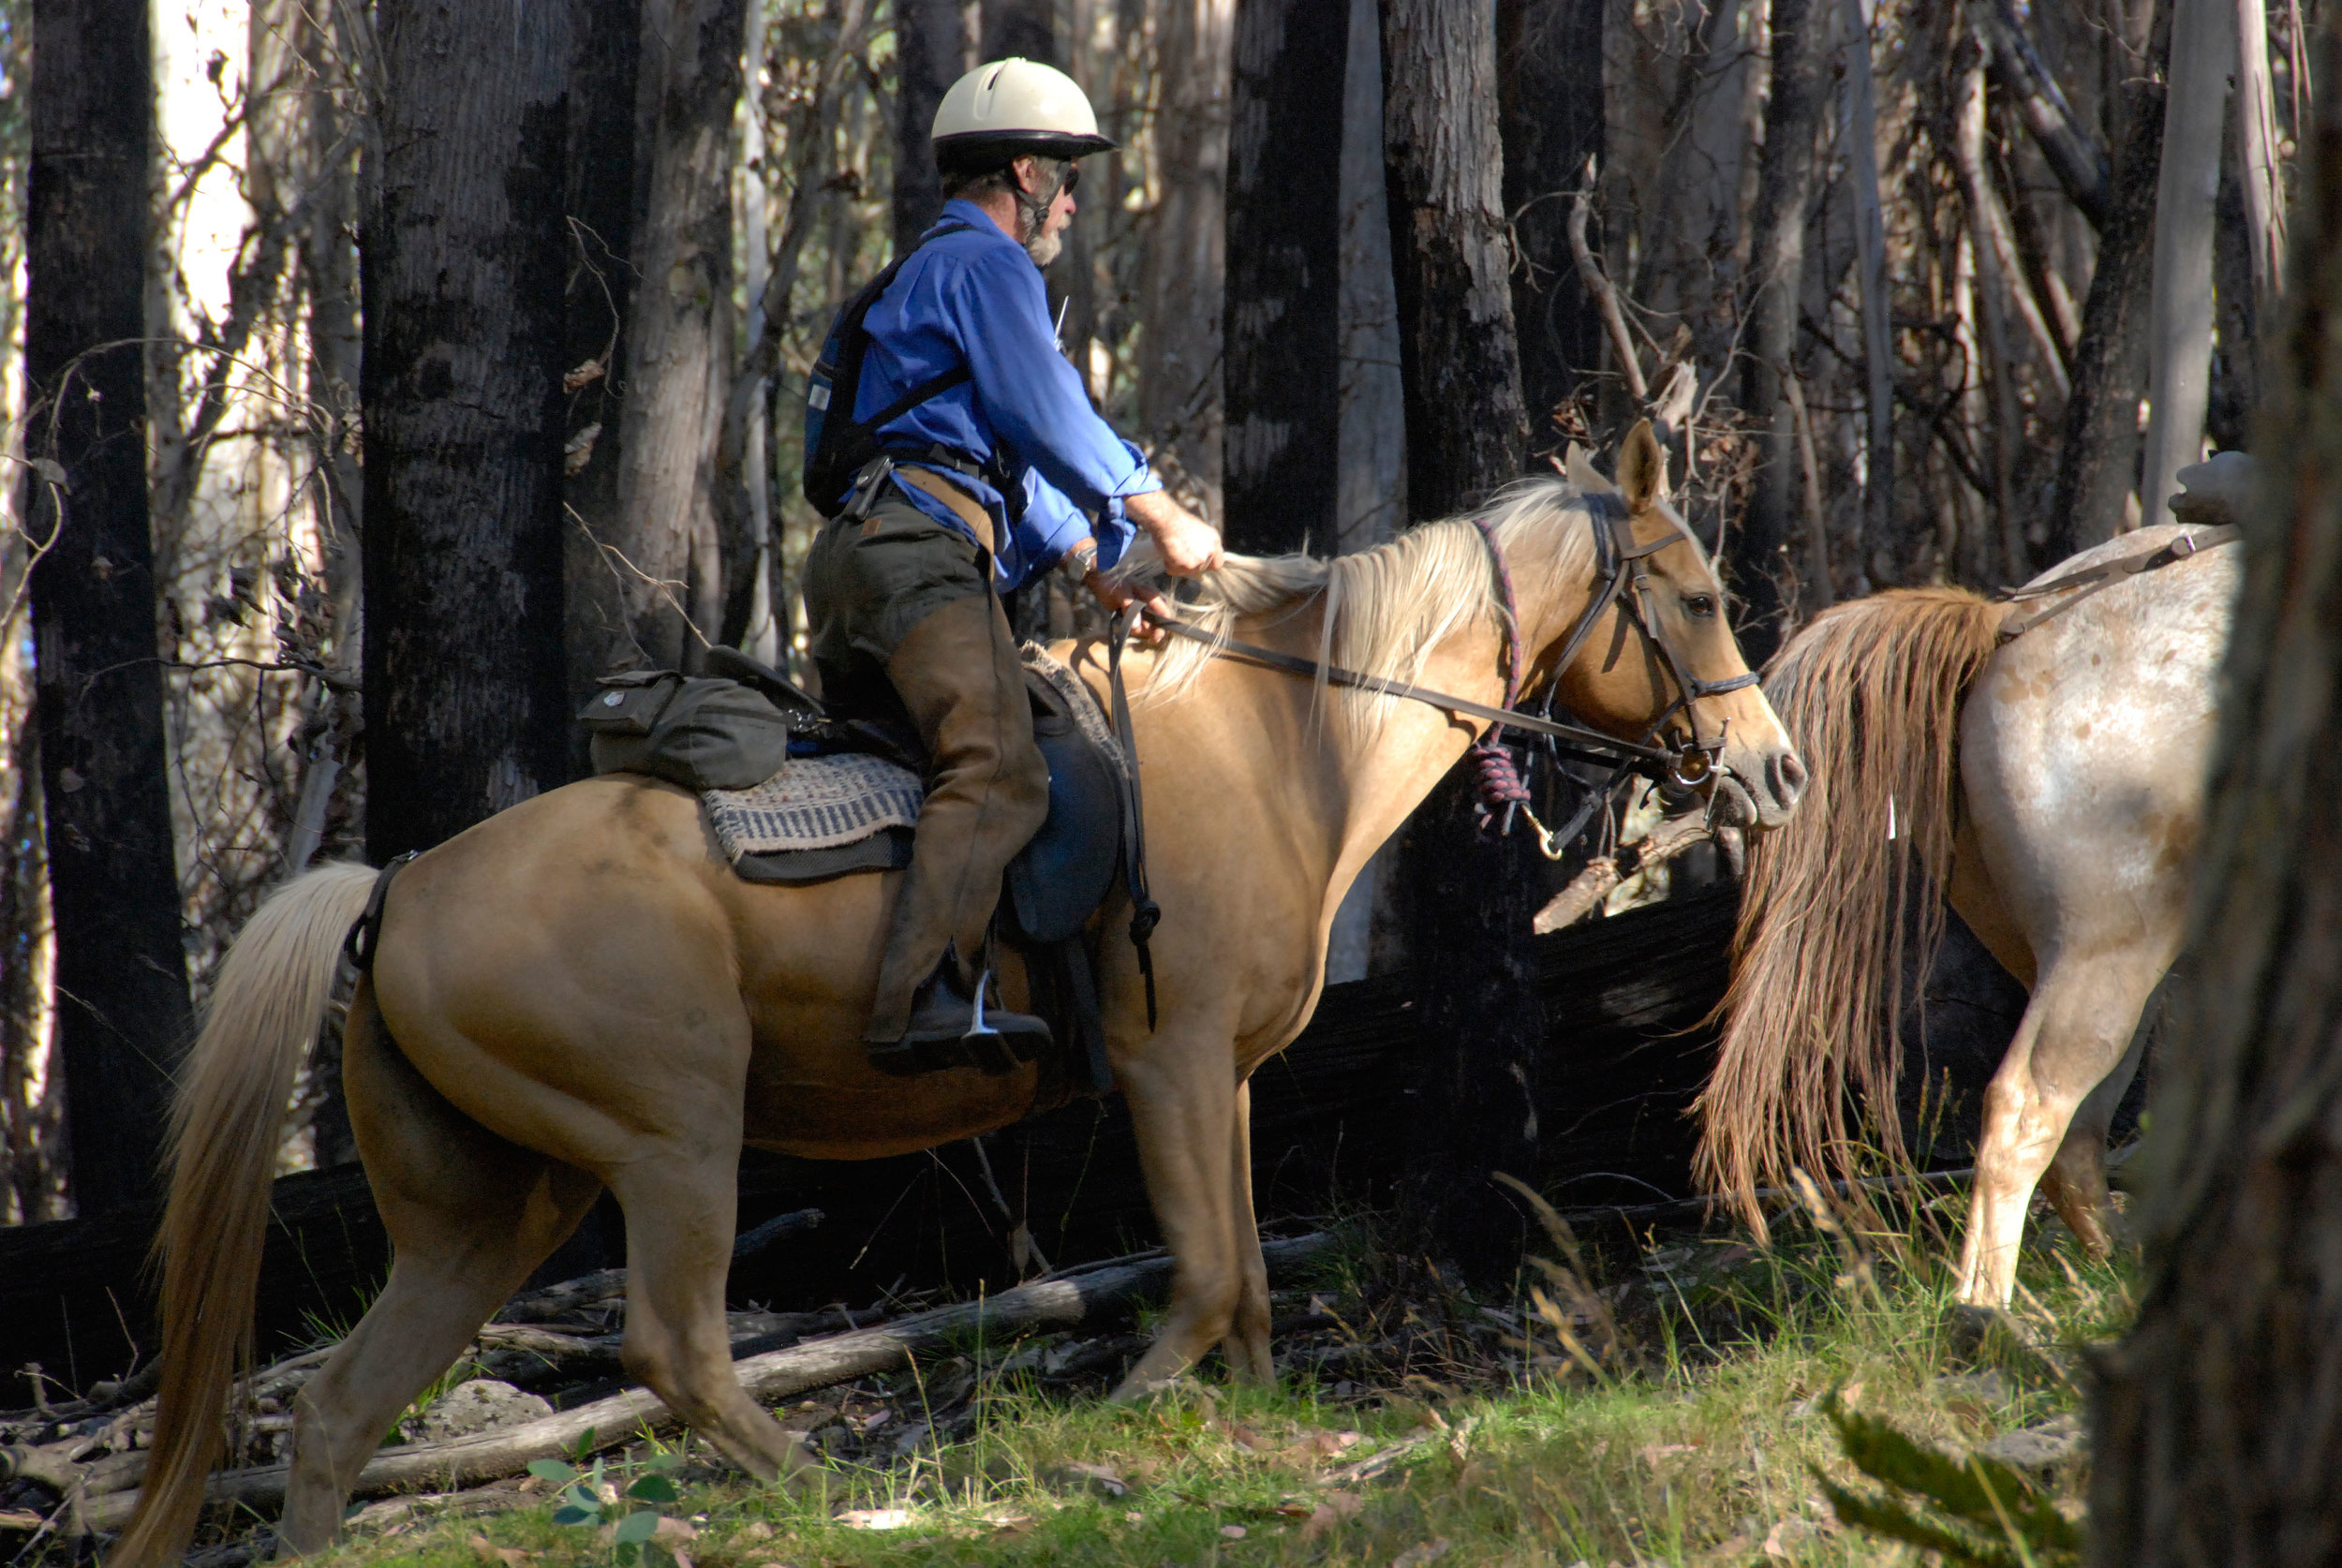 2 Hour and Half Day Rides - Please note that these rides are subject to our availability as we are frequently away in the mountains.Bookings should be made via phone 03 5777 5590  Age and weight restrictions apply.Leaving from Merrijig Lodge, with a horse matched to your ability, if you are an inexperienced rider, we teach you how to trot and canter (there is always plenty of staff to help) or you can just walk along and enjoy the view.Upon entering the forest you wind your way down to the Buttercup Creek through the Peppermint Gums and Candle Barks, you may observe a wallaby dash off through the bush or catch a glimpse of the elusive deer.As we cross the creek your horse navigates its way over the stoney rock floor. Once out of the stream you are on the open plain of the Deadwood forest with its gentle upward slope to the highest point.Now the fun really begins. Your decision, to join the group who want a leisurely walk, or the buzz of a canter to the top.At the top, while your horse takes a well-earned rest and you catch your breath, you see the mountains of the high country made famous in the film 'Man from Snowy River II' staring down on you, Buller, Stirling, Mt No. 3, the Pinnacle, Razorback, this is the real high countryIt now a leisurely walk back. As you enter the gate to the homestead it seems time has slipped away, you have experienced